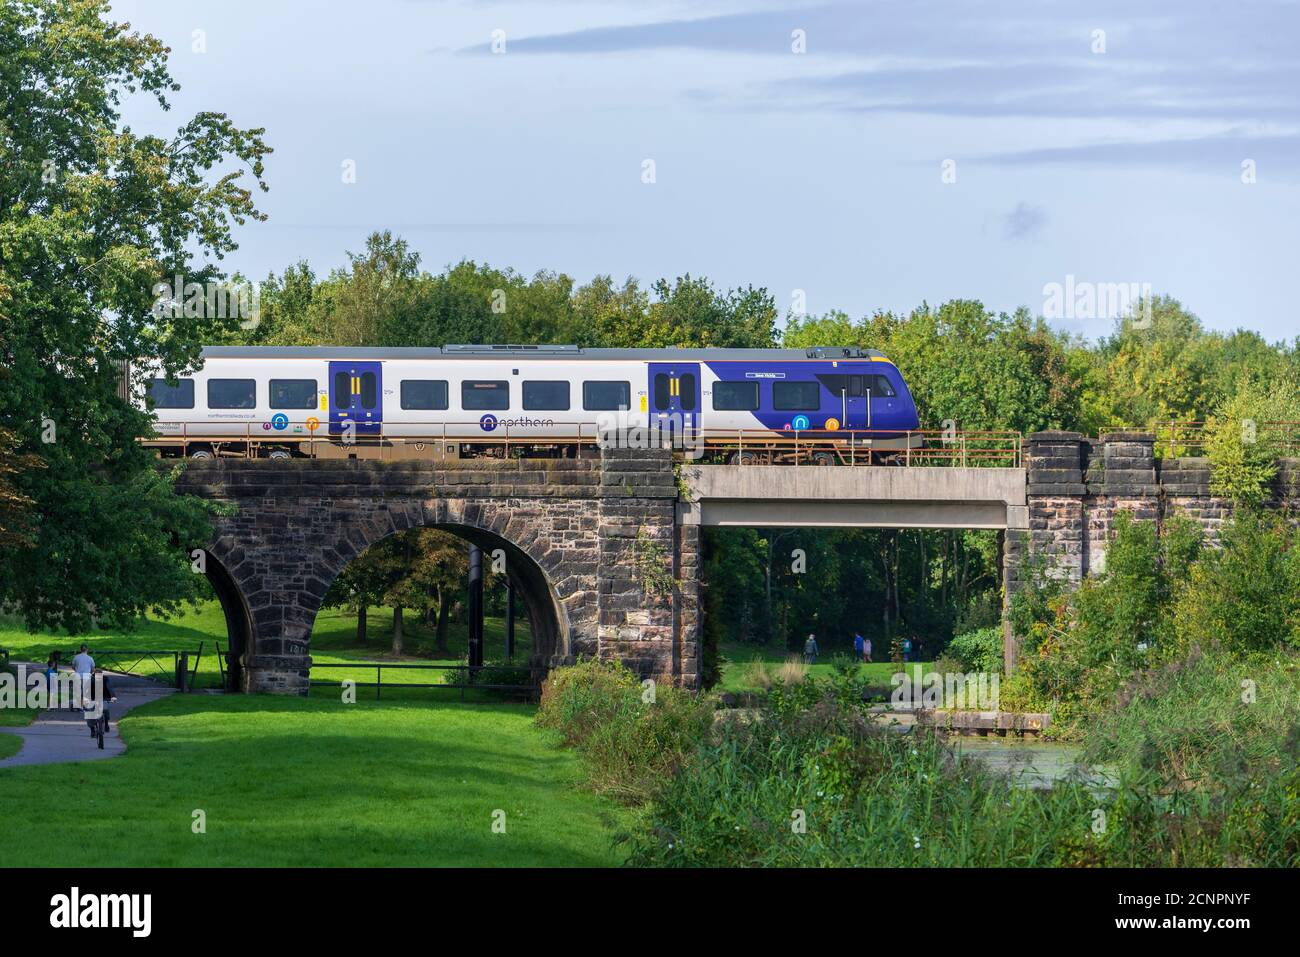 A Northern Rail diesel train crosses the Sankey Valley viaduct over the disused canal in the linaer park in the West of Warrington. Stock Photo